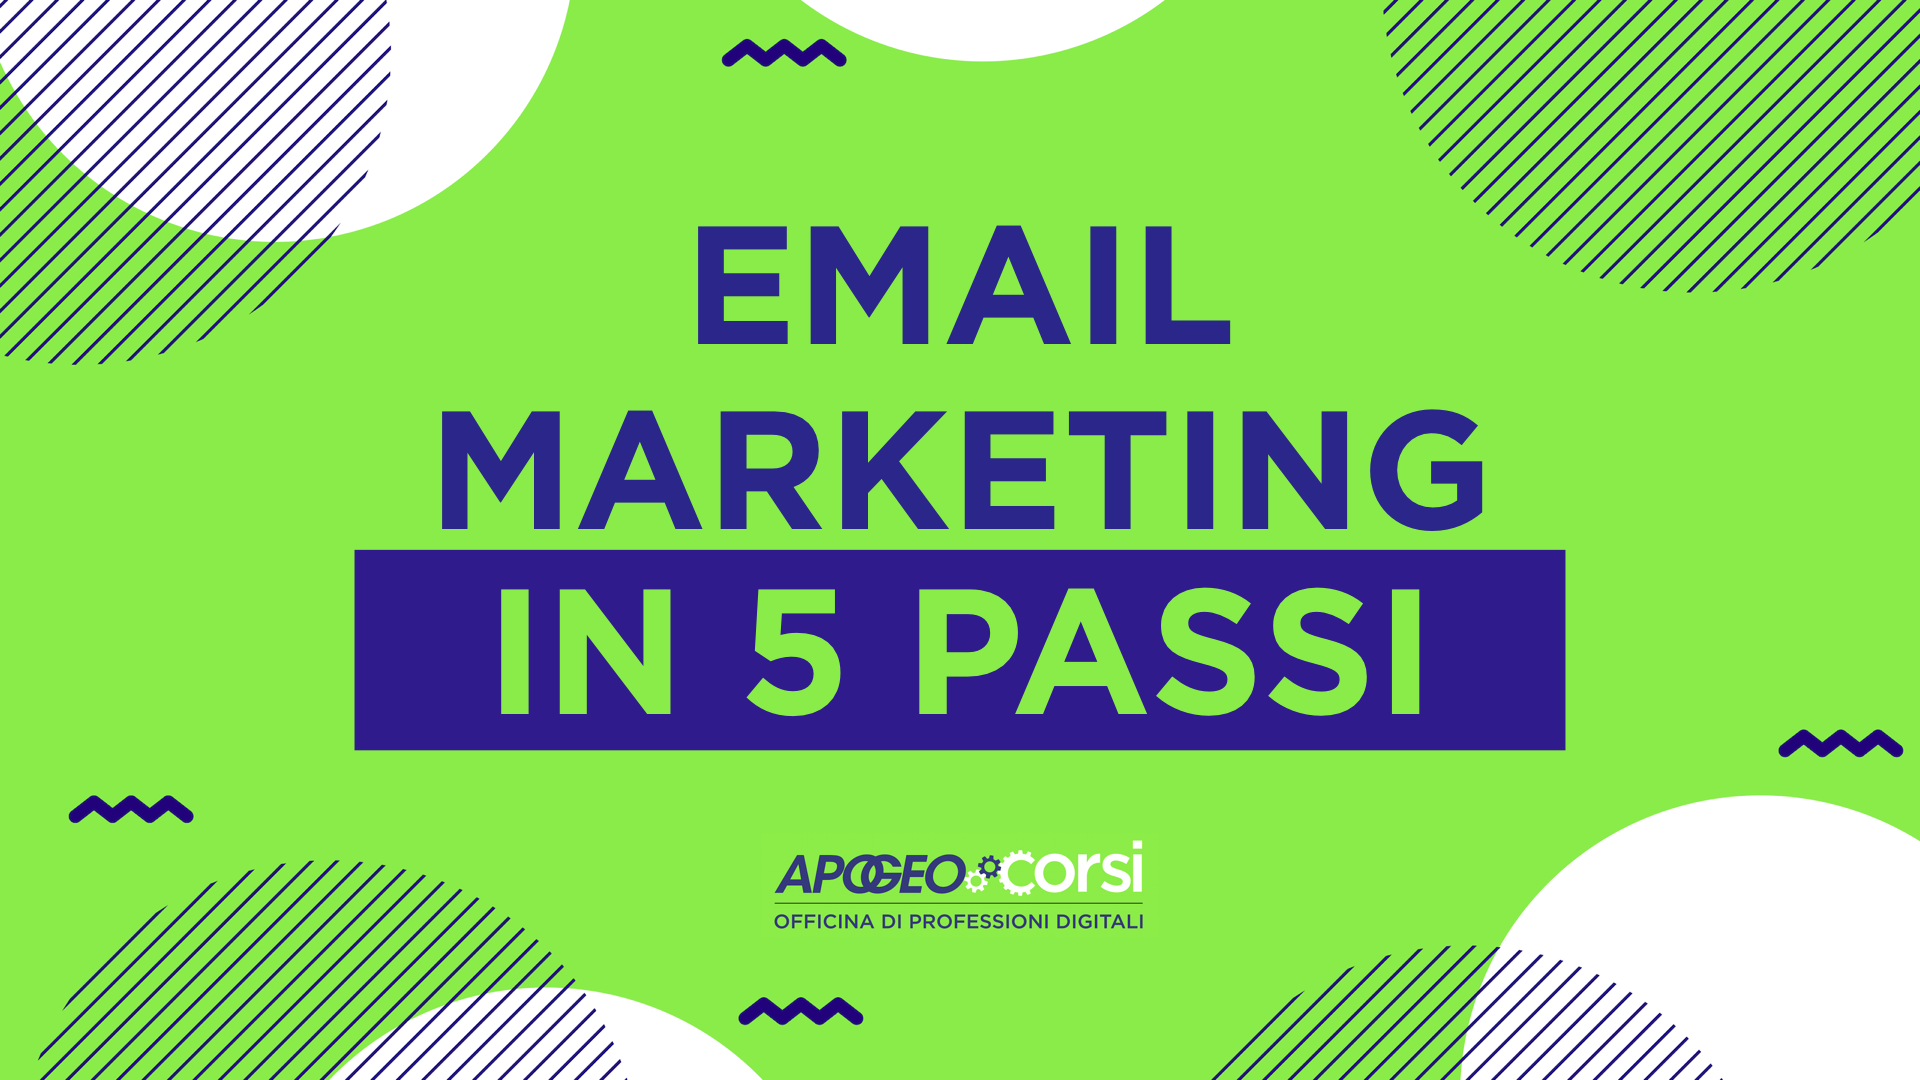 Email marketing in 5 passi